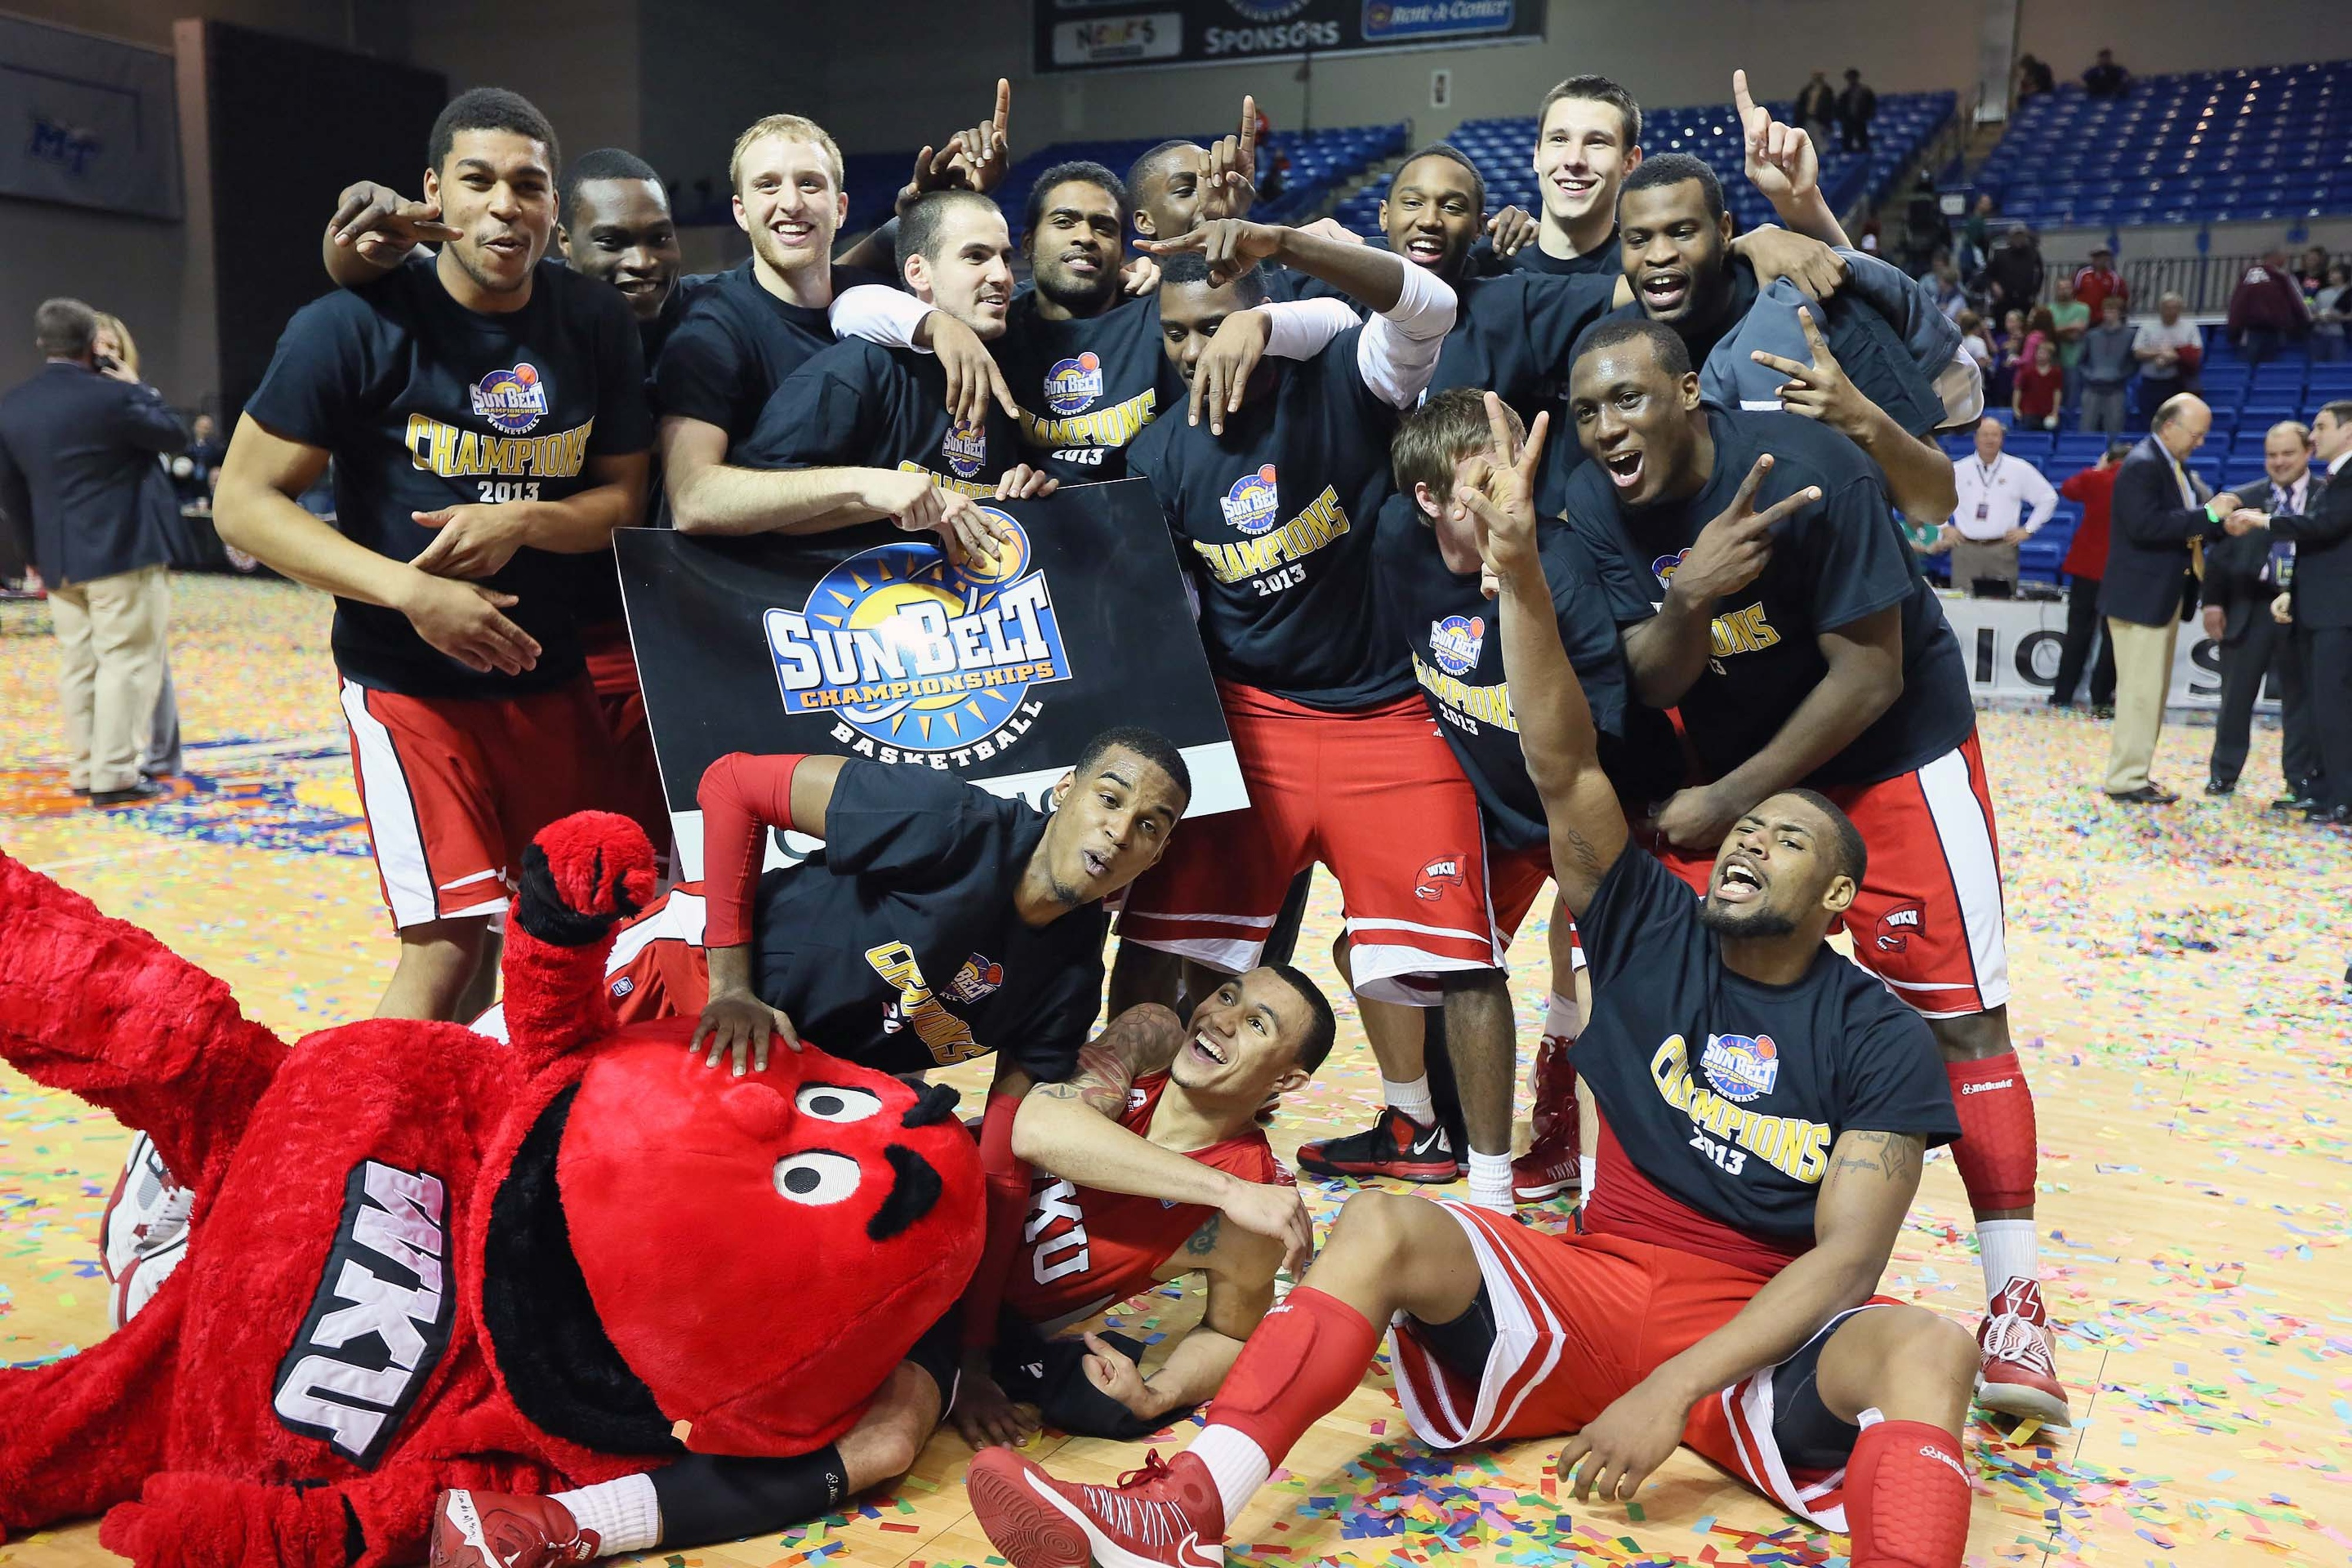 The Western Kentucky Hilltoppers are looking for their third straight Sun Belt Tourney title.